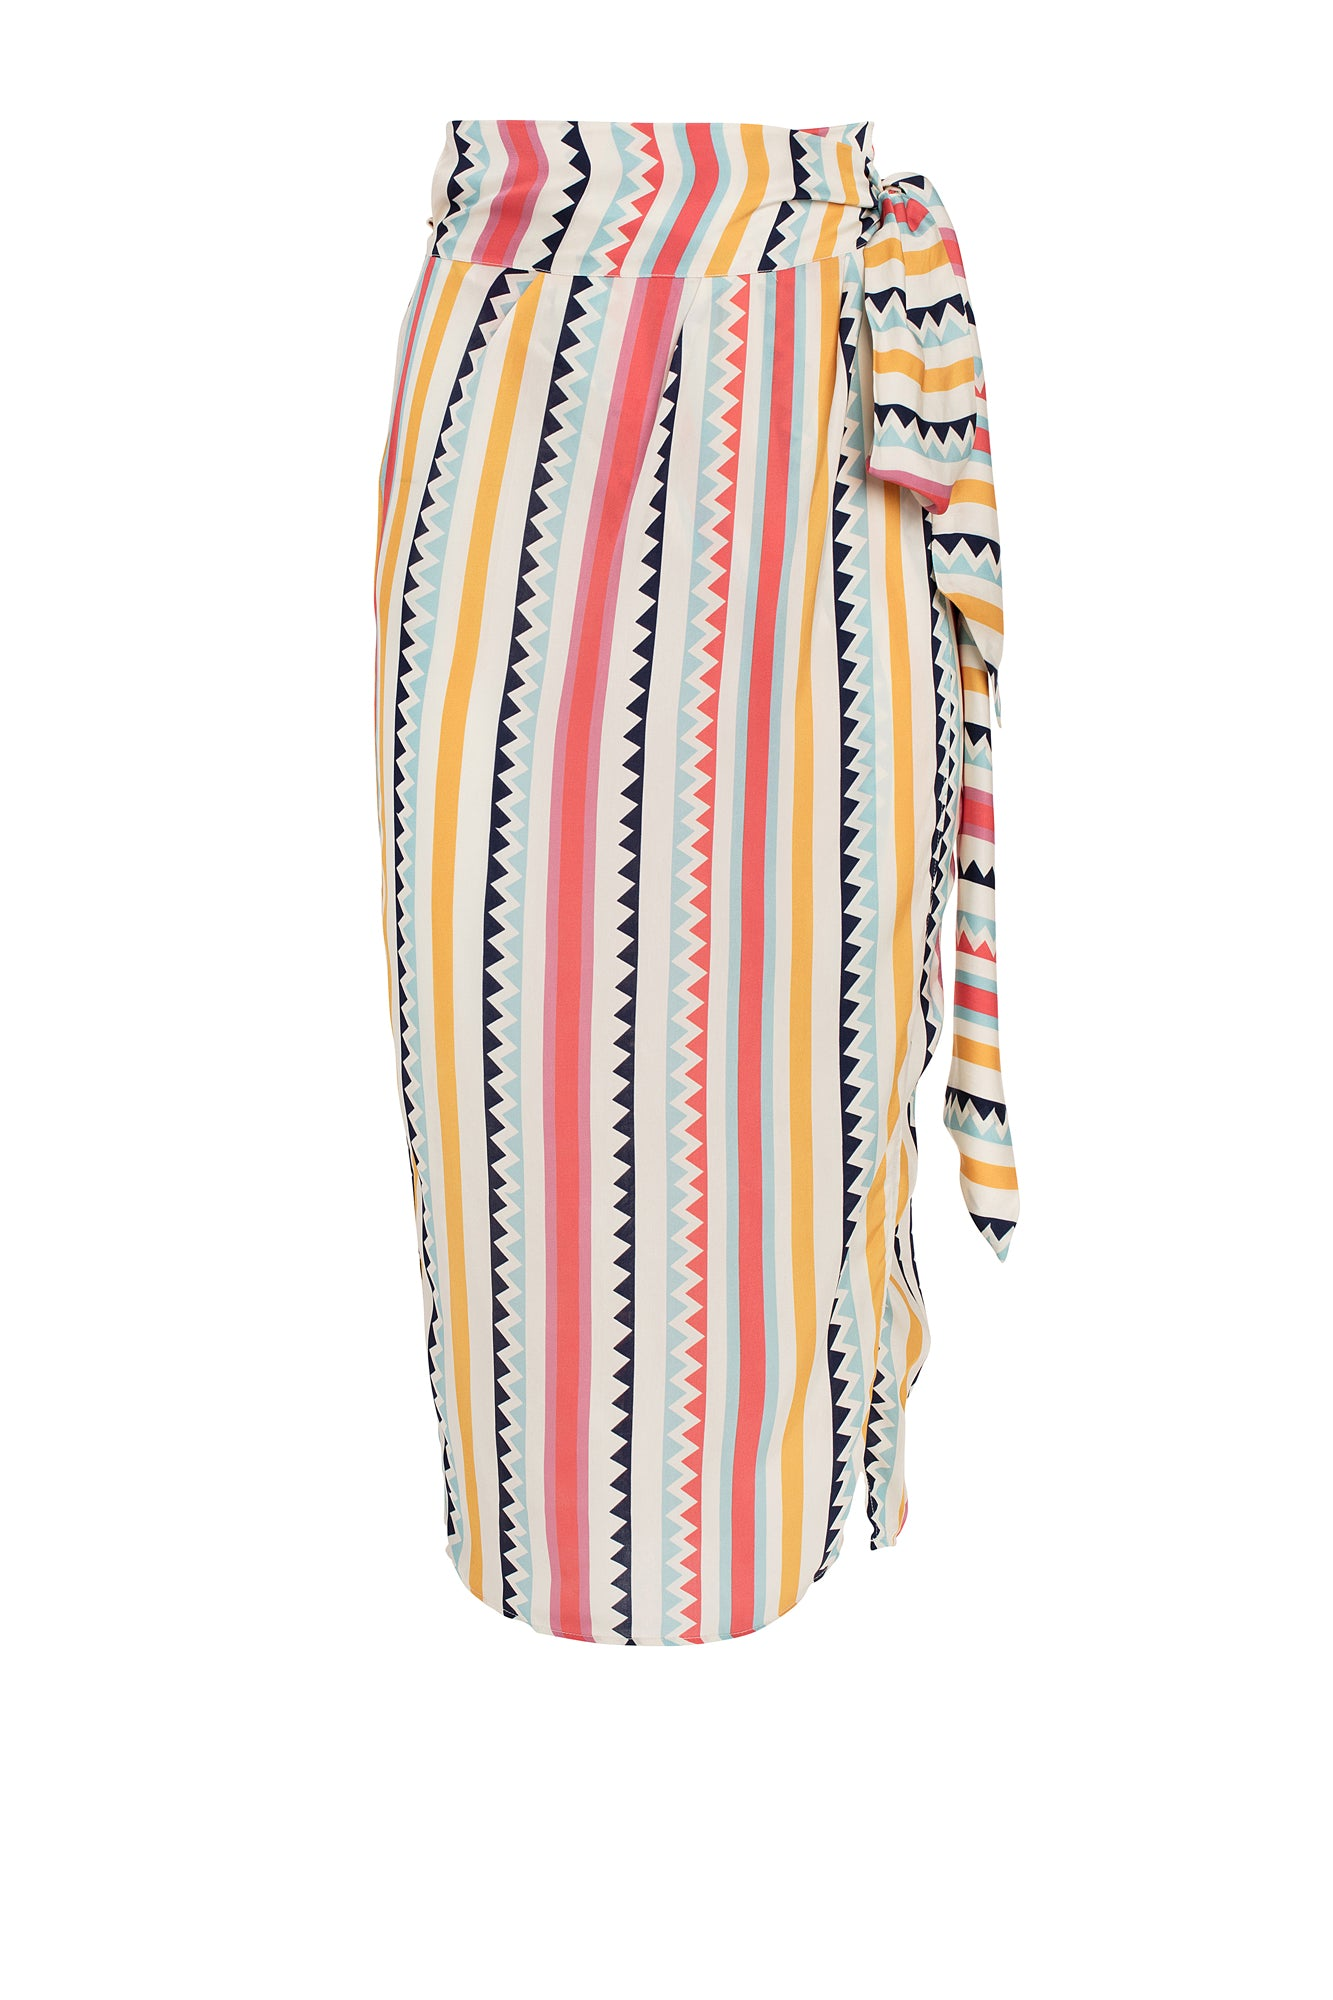 Carolina K Wanda Skirt in Multi Triangles